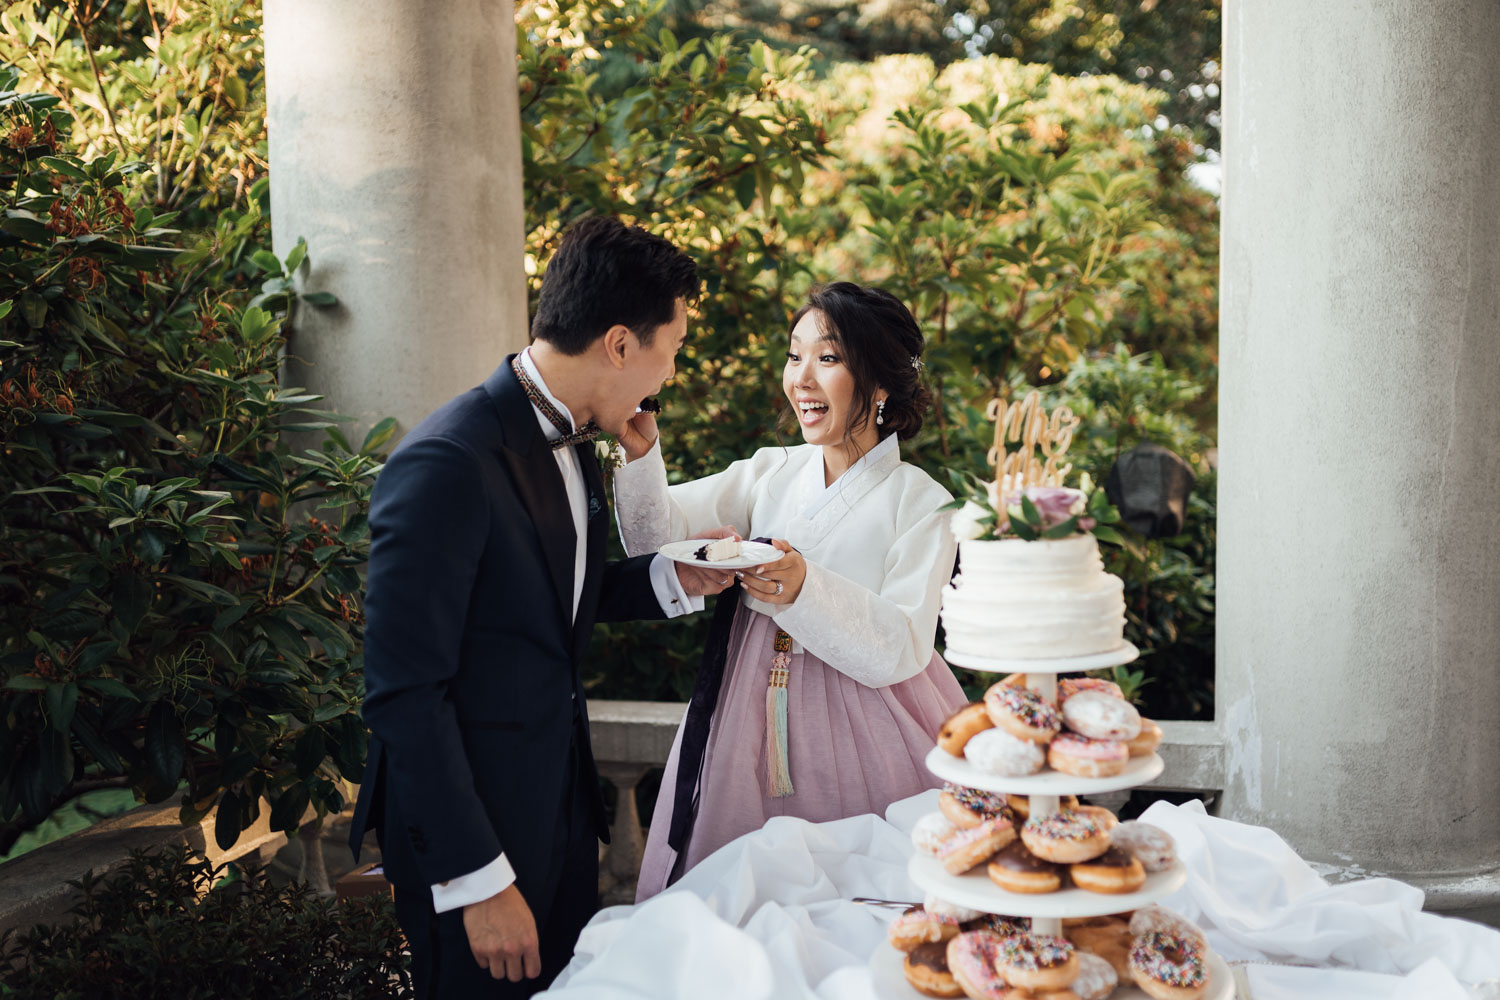 donut cake cutting hycroft manor summer wedding photography vancouver